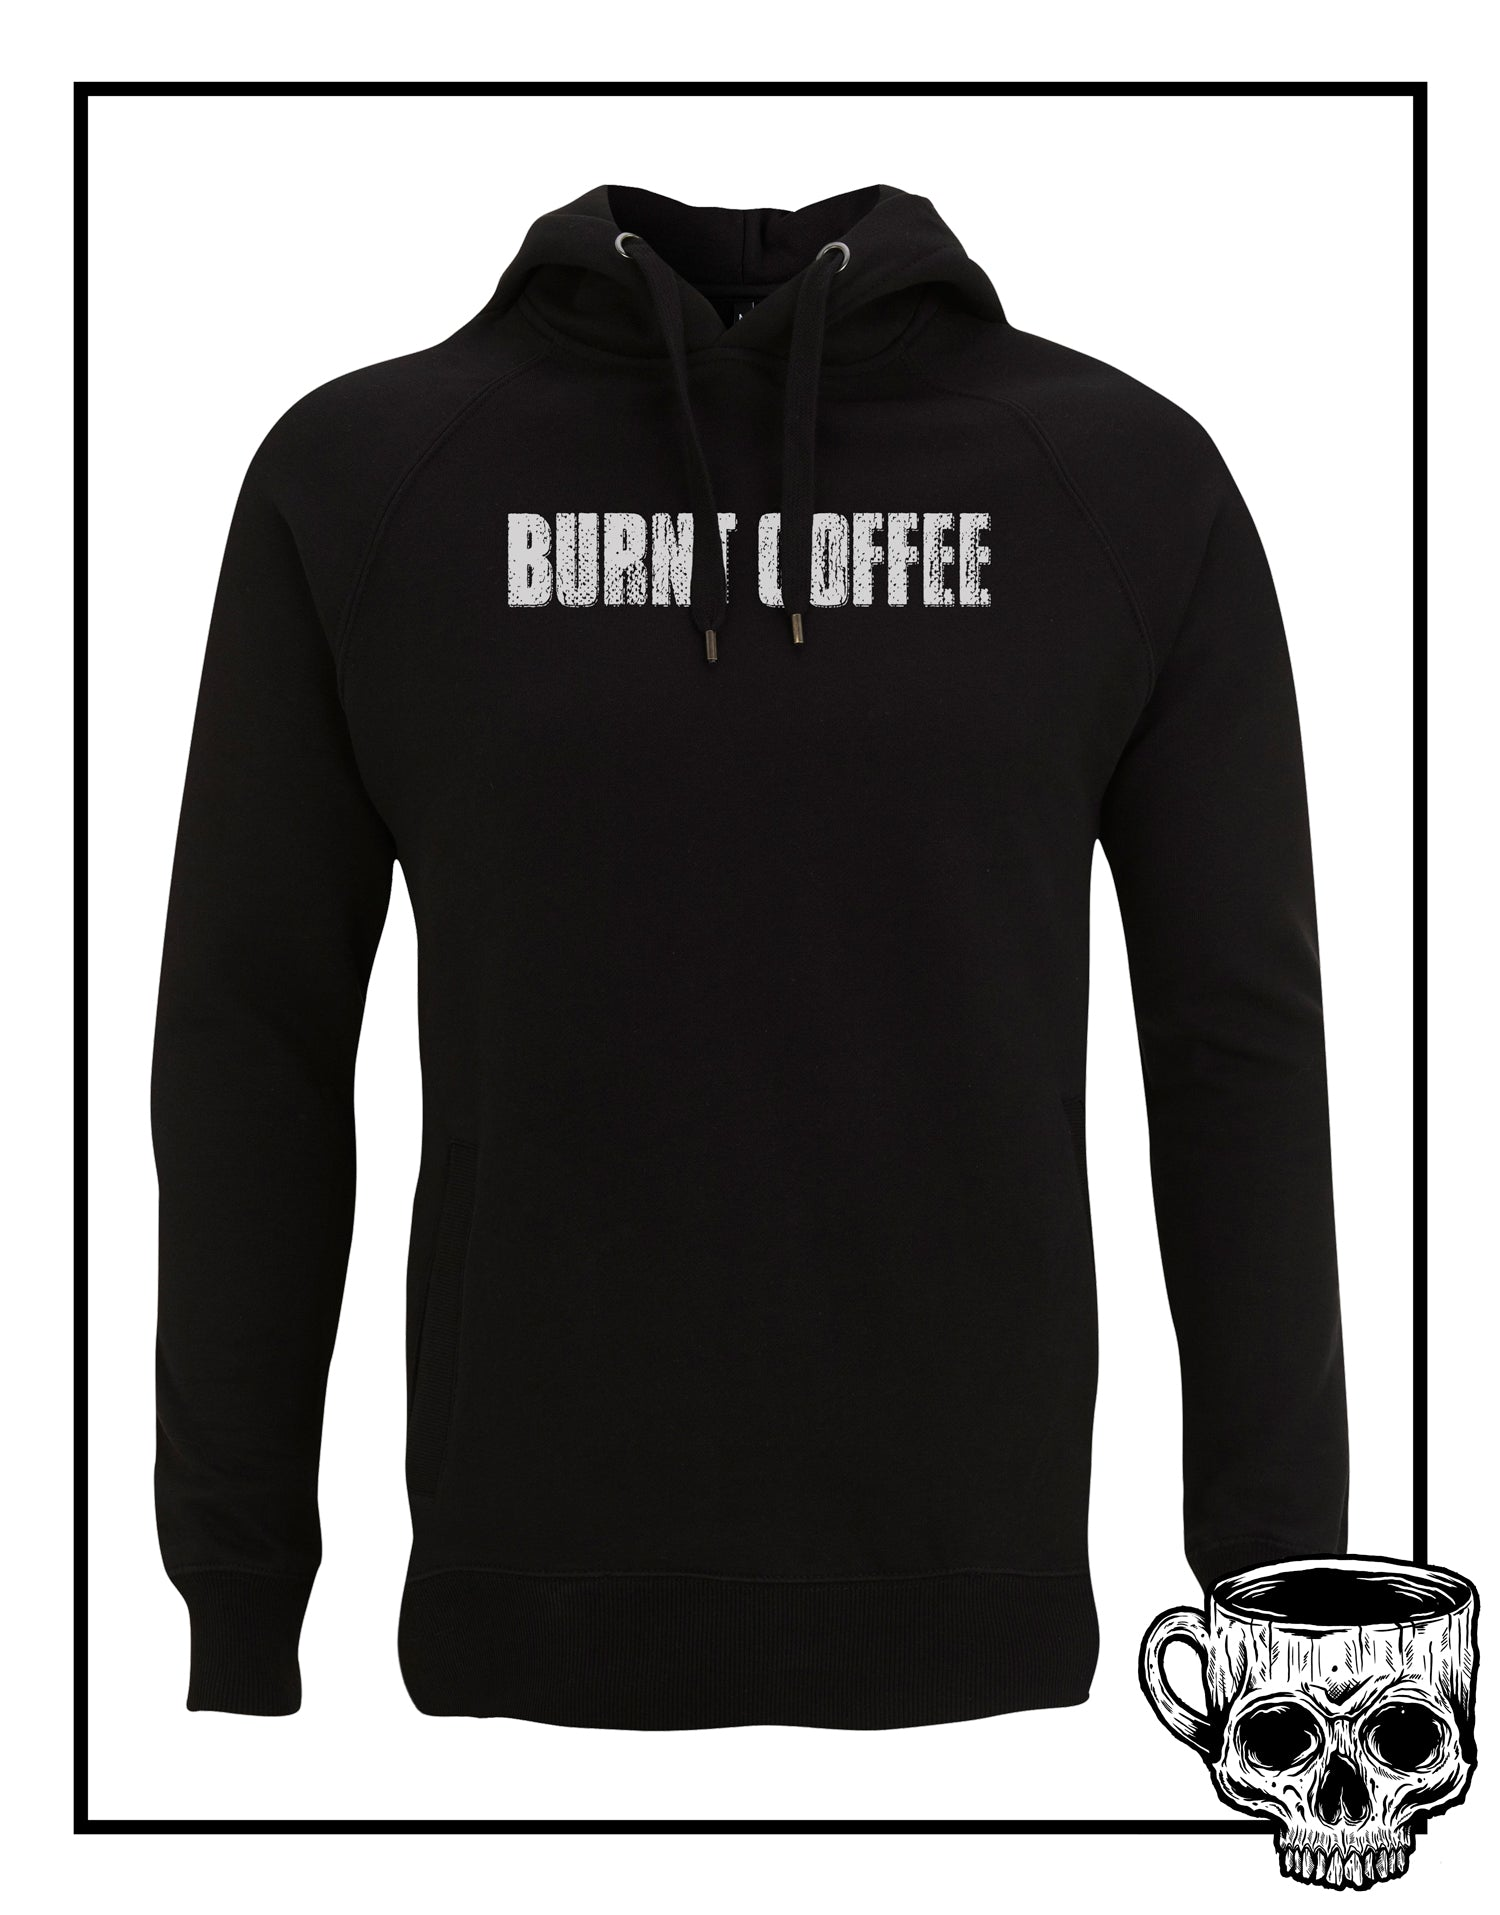 Burnt Coffee Hoodie - Burnt Coffee Clothing